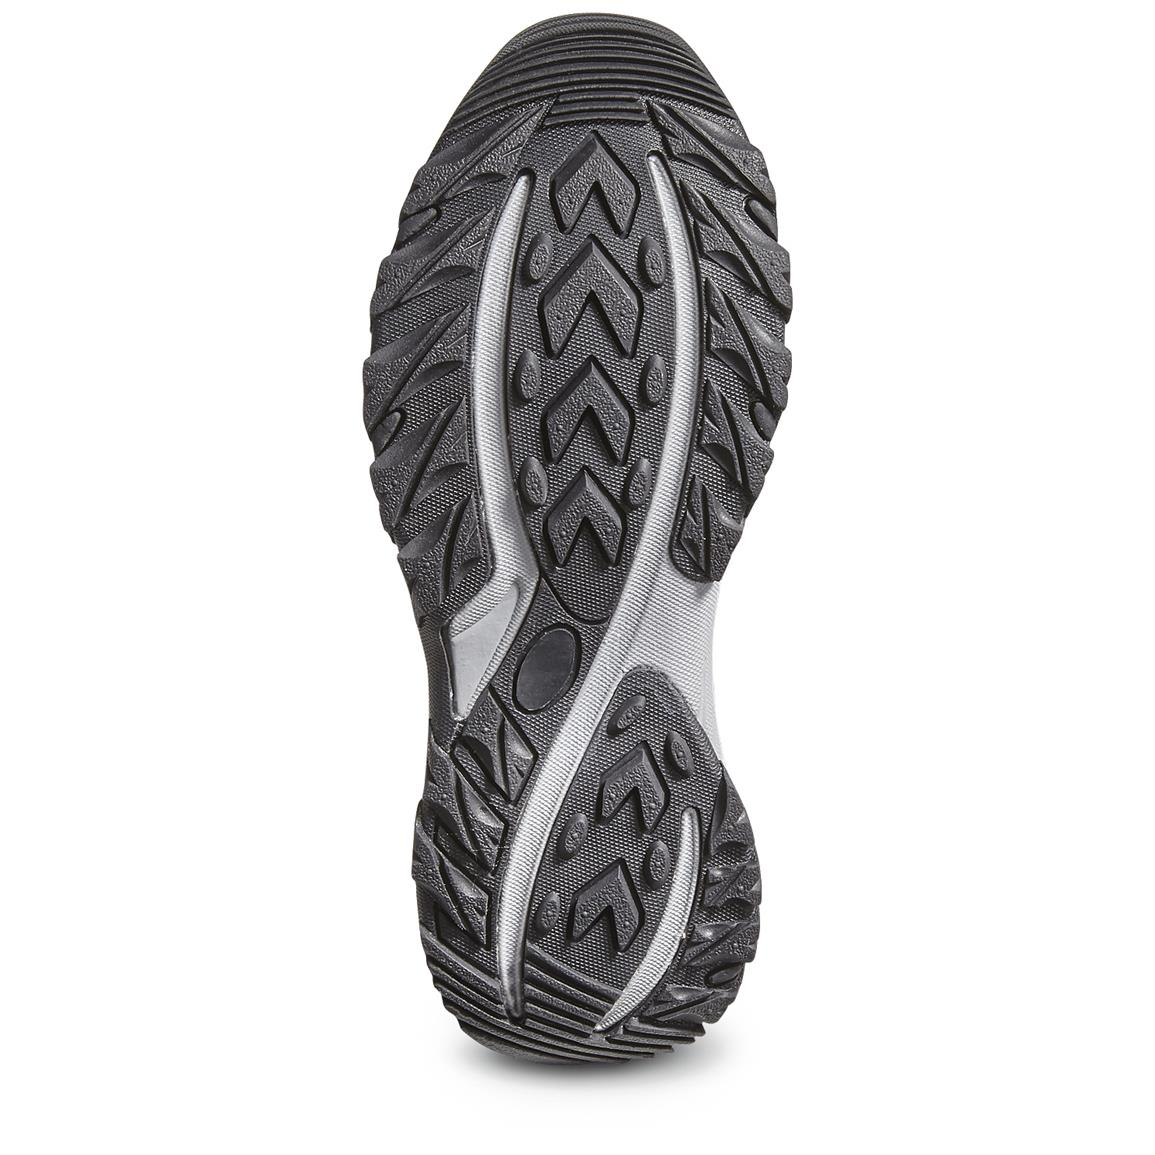 Traction-ready rubber outsole